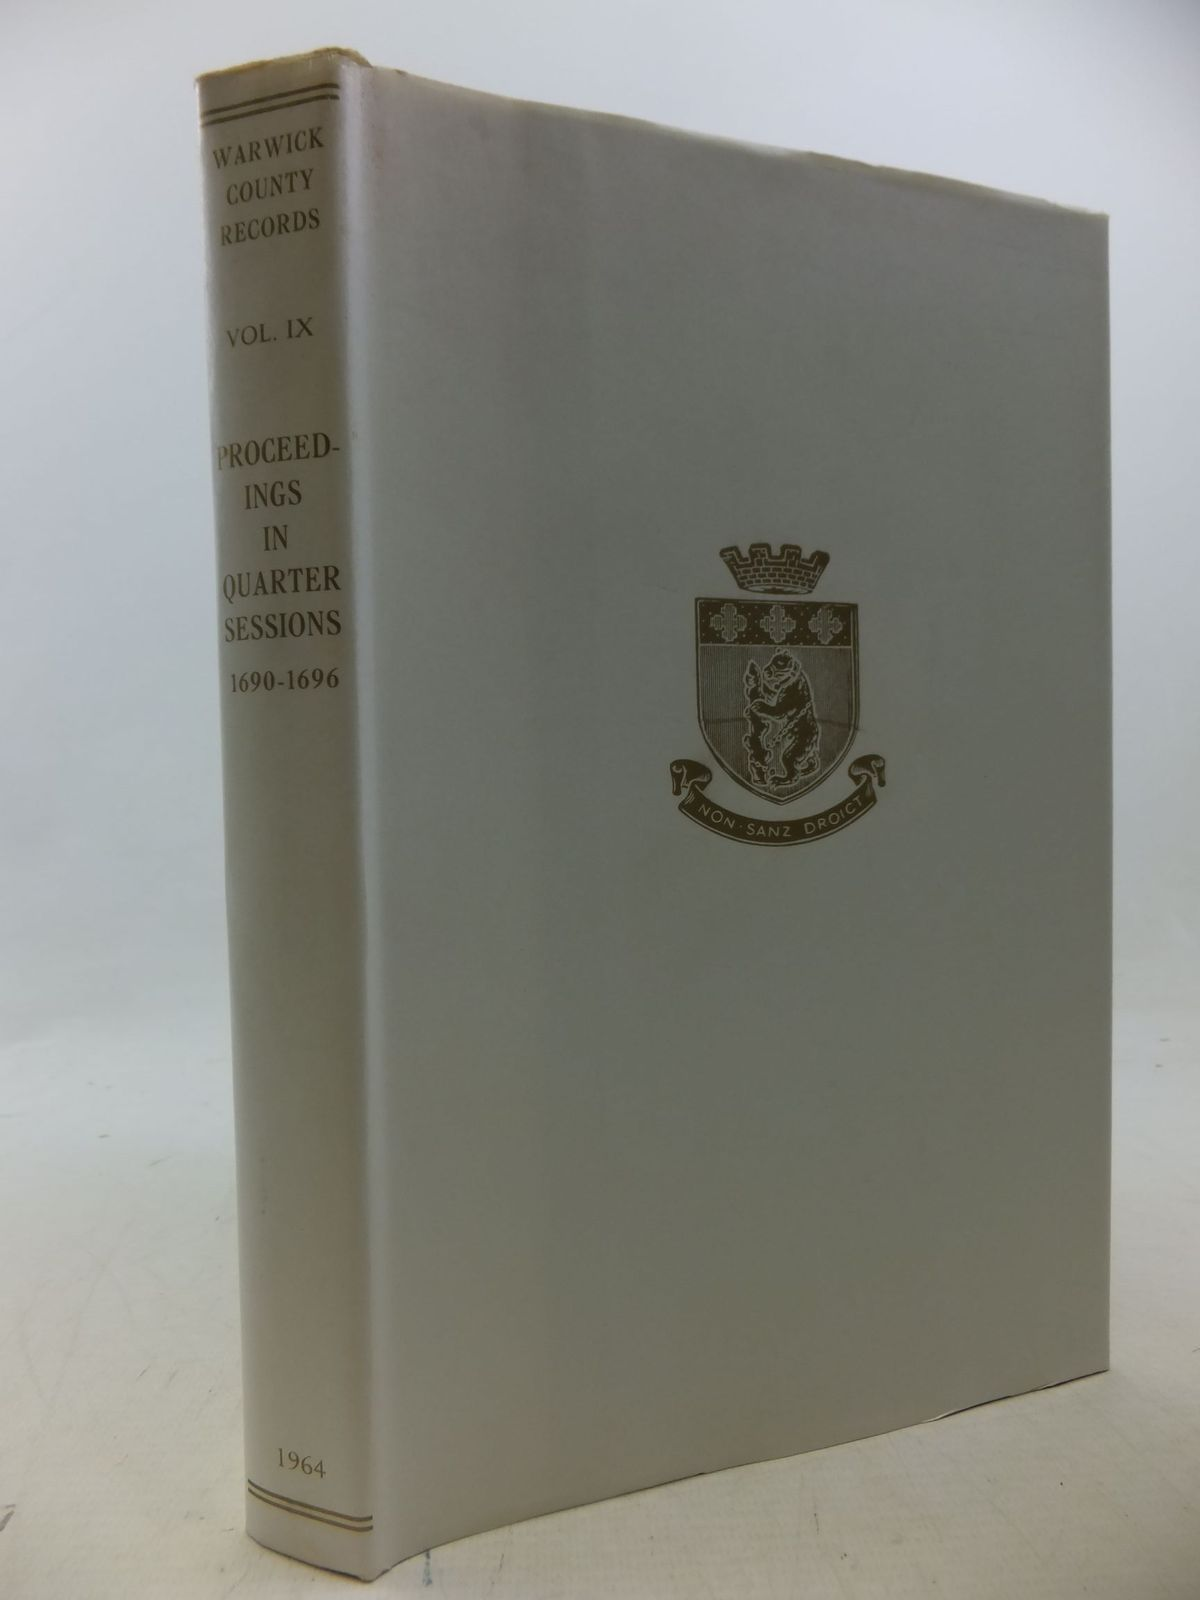 Photo of book